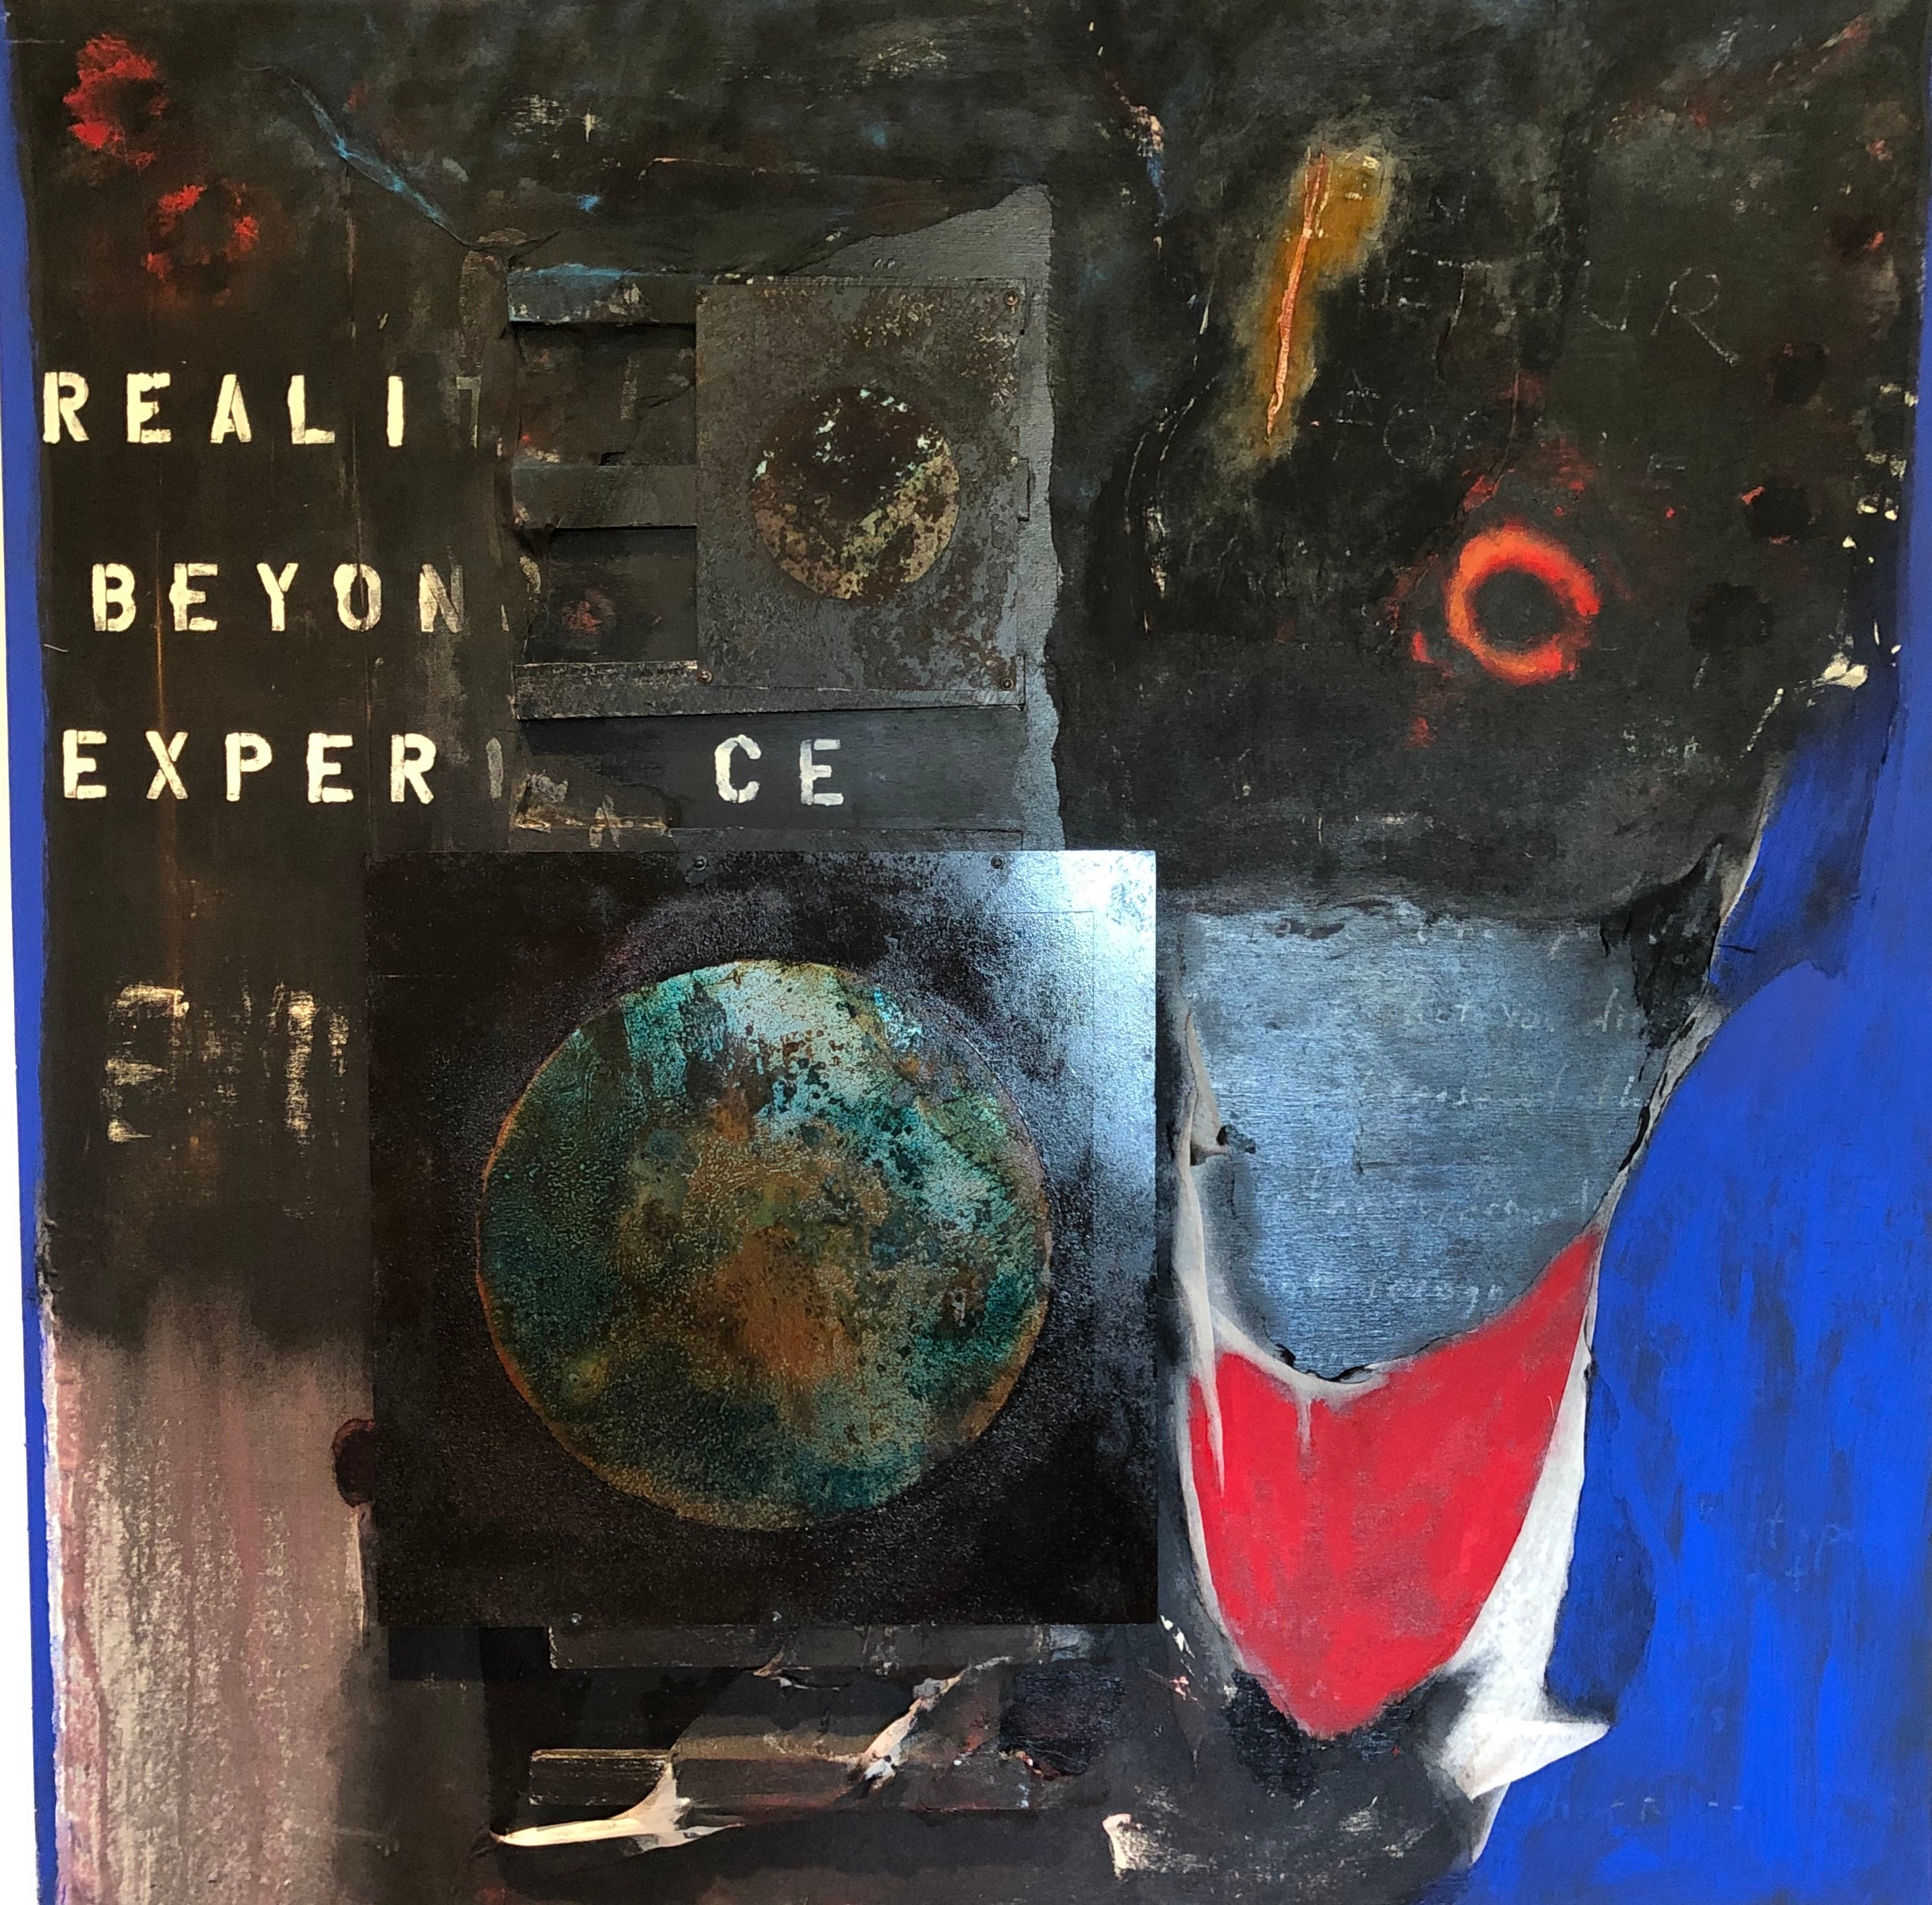 Reality is beyond experience mm on wood 60x60 albstg